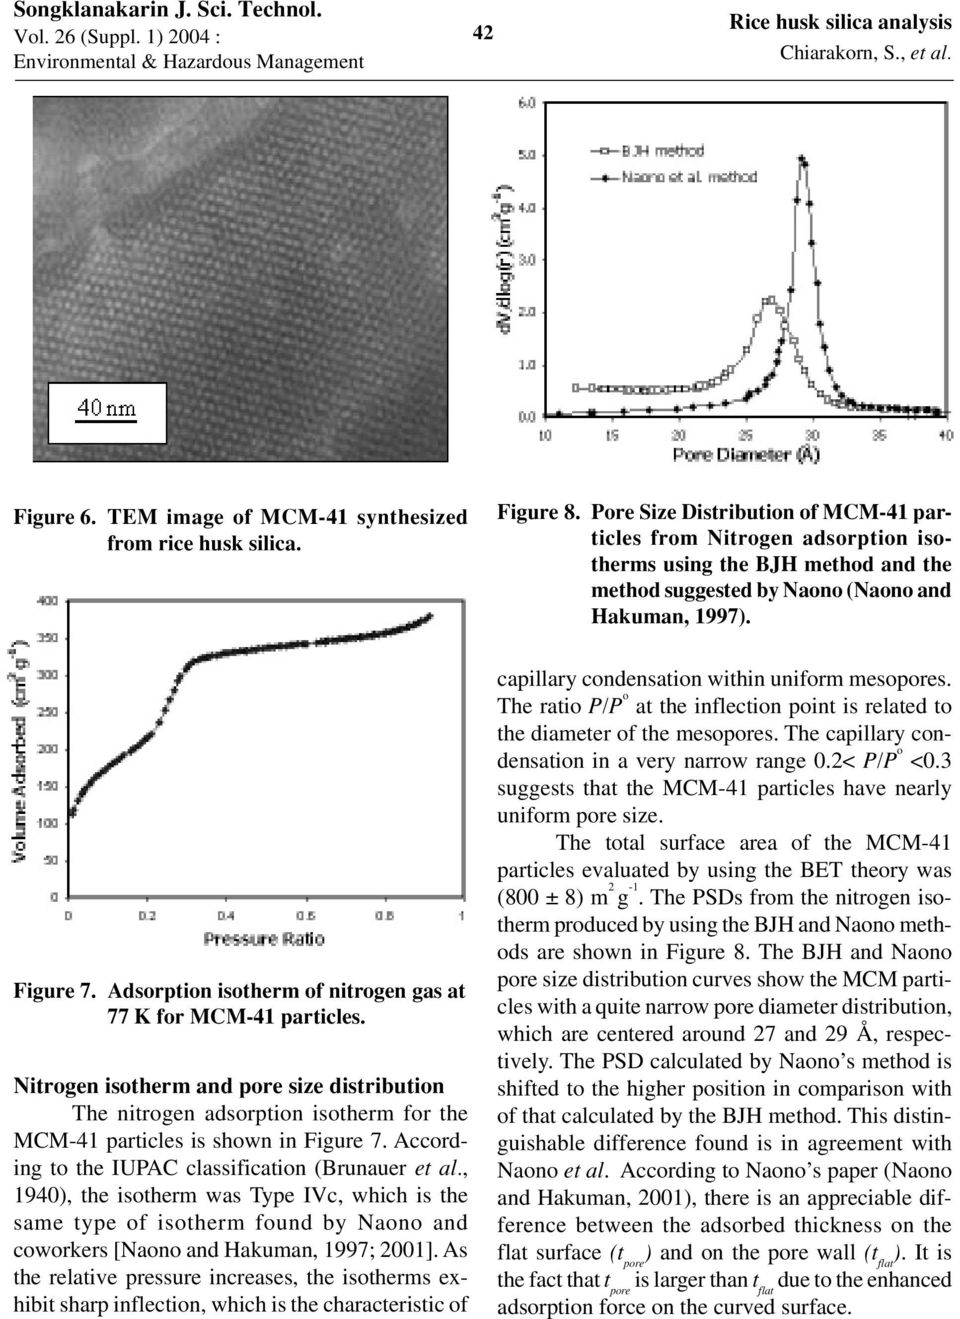 Adsorption isotherm of nitrogen gas at 77 K for MCM-41 particles. Nitrogen isotherm and pore size distribution The nitrogen adsorption isotherm for the MCM-41 particles is shown in Figure 7.